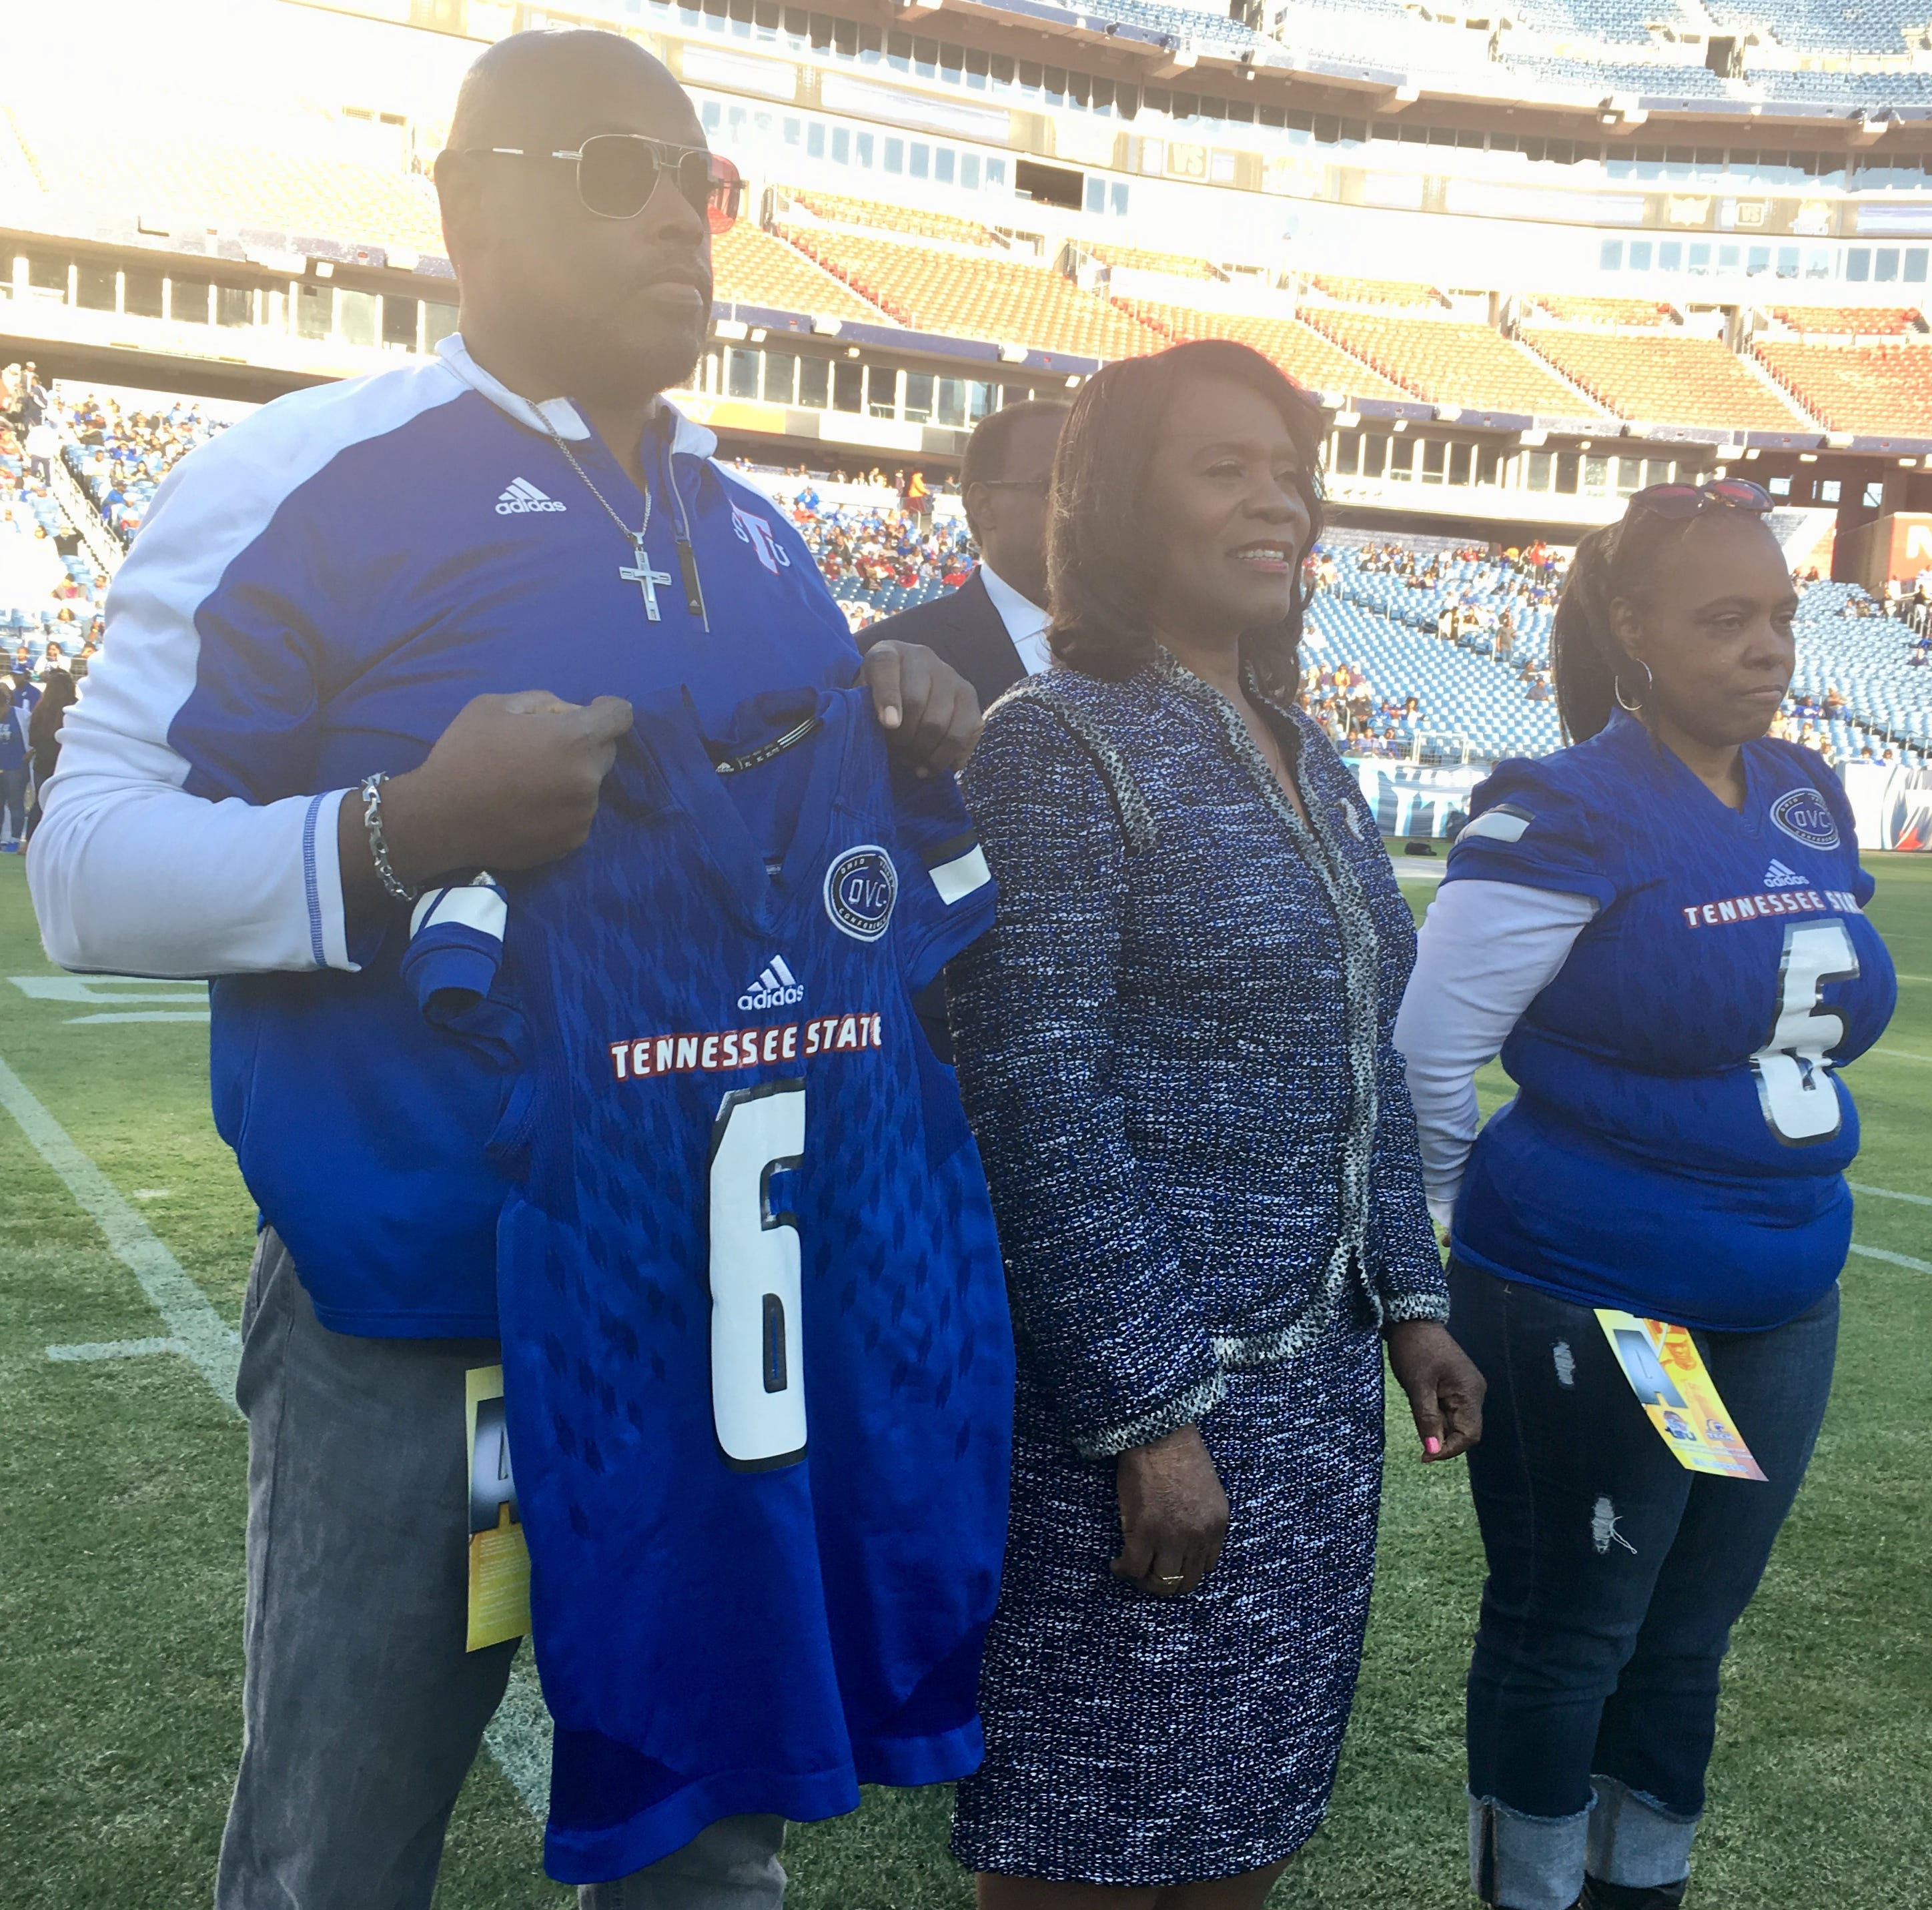 Mom of injured TSU player Christion Abercrombie sends message to team